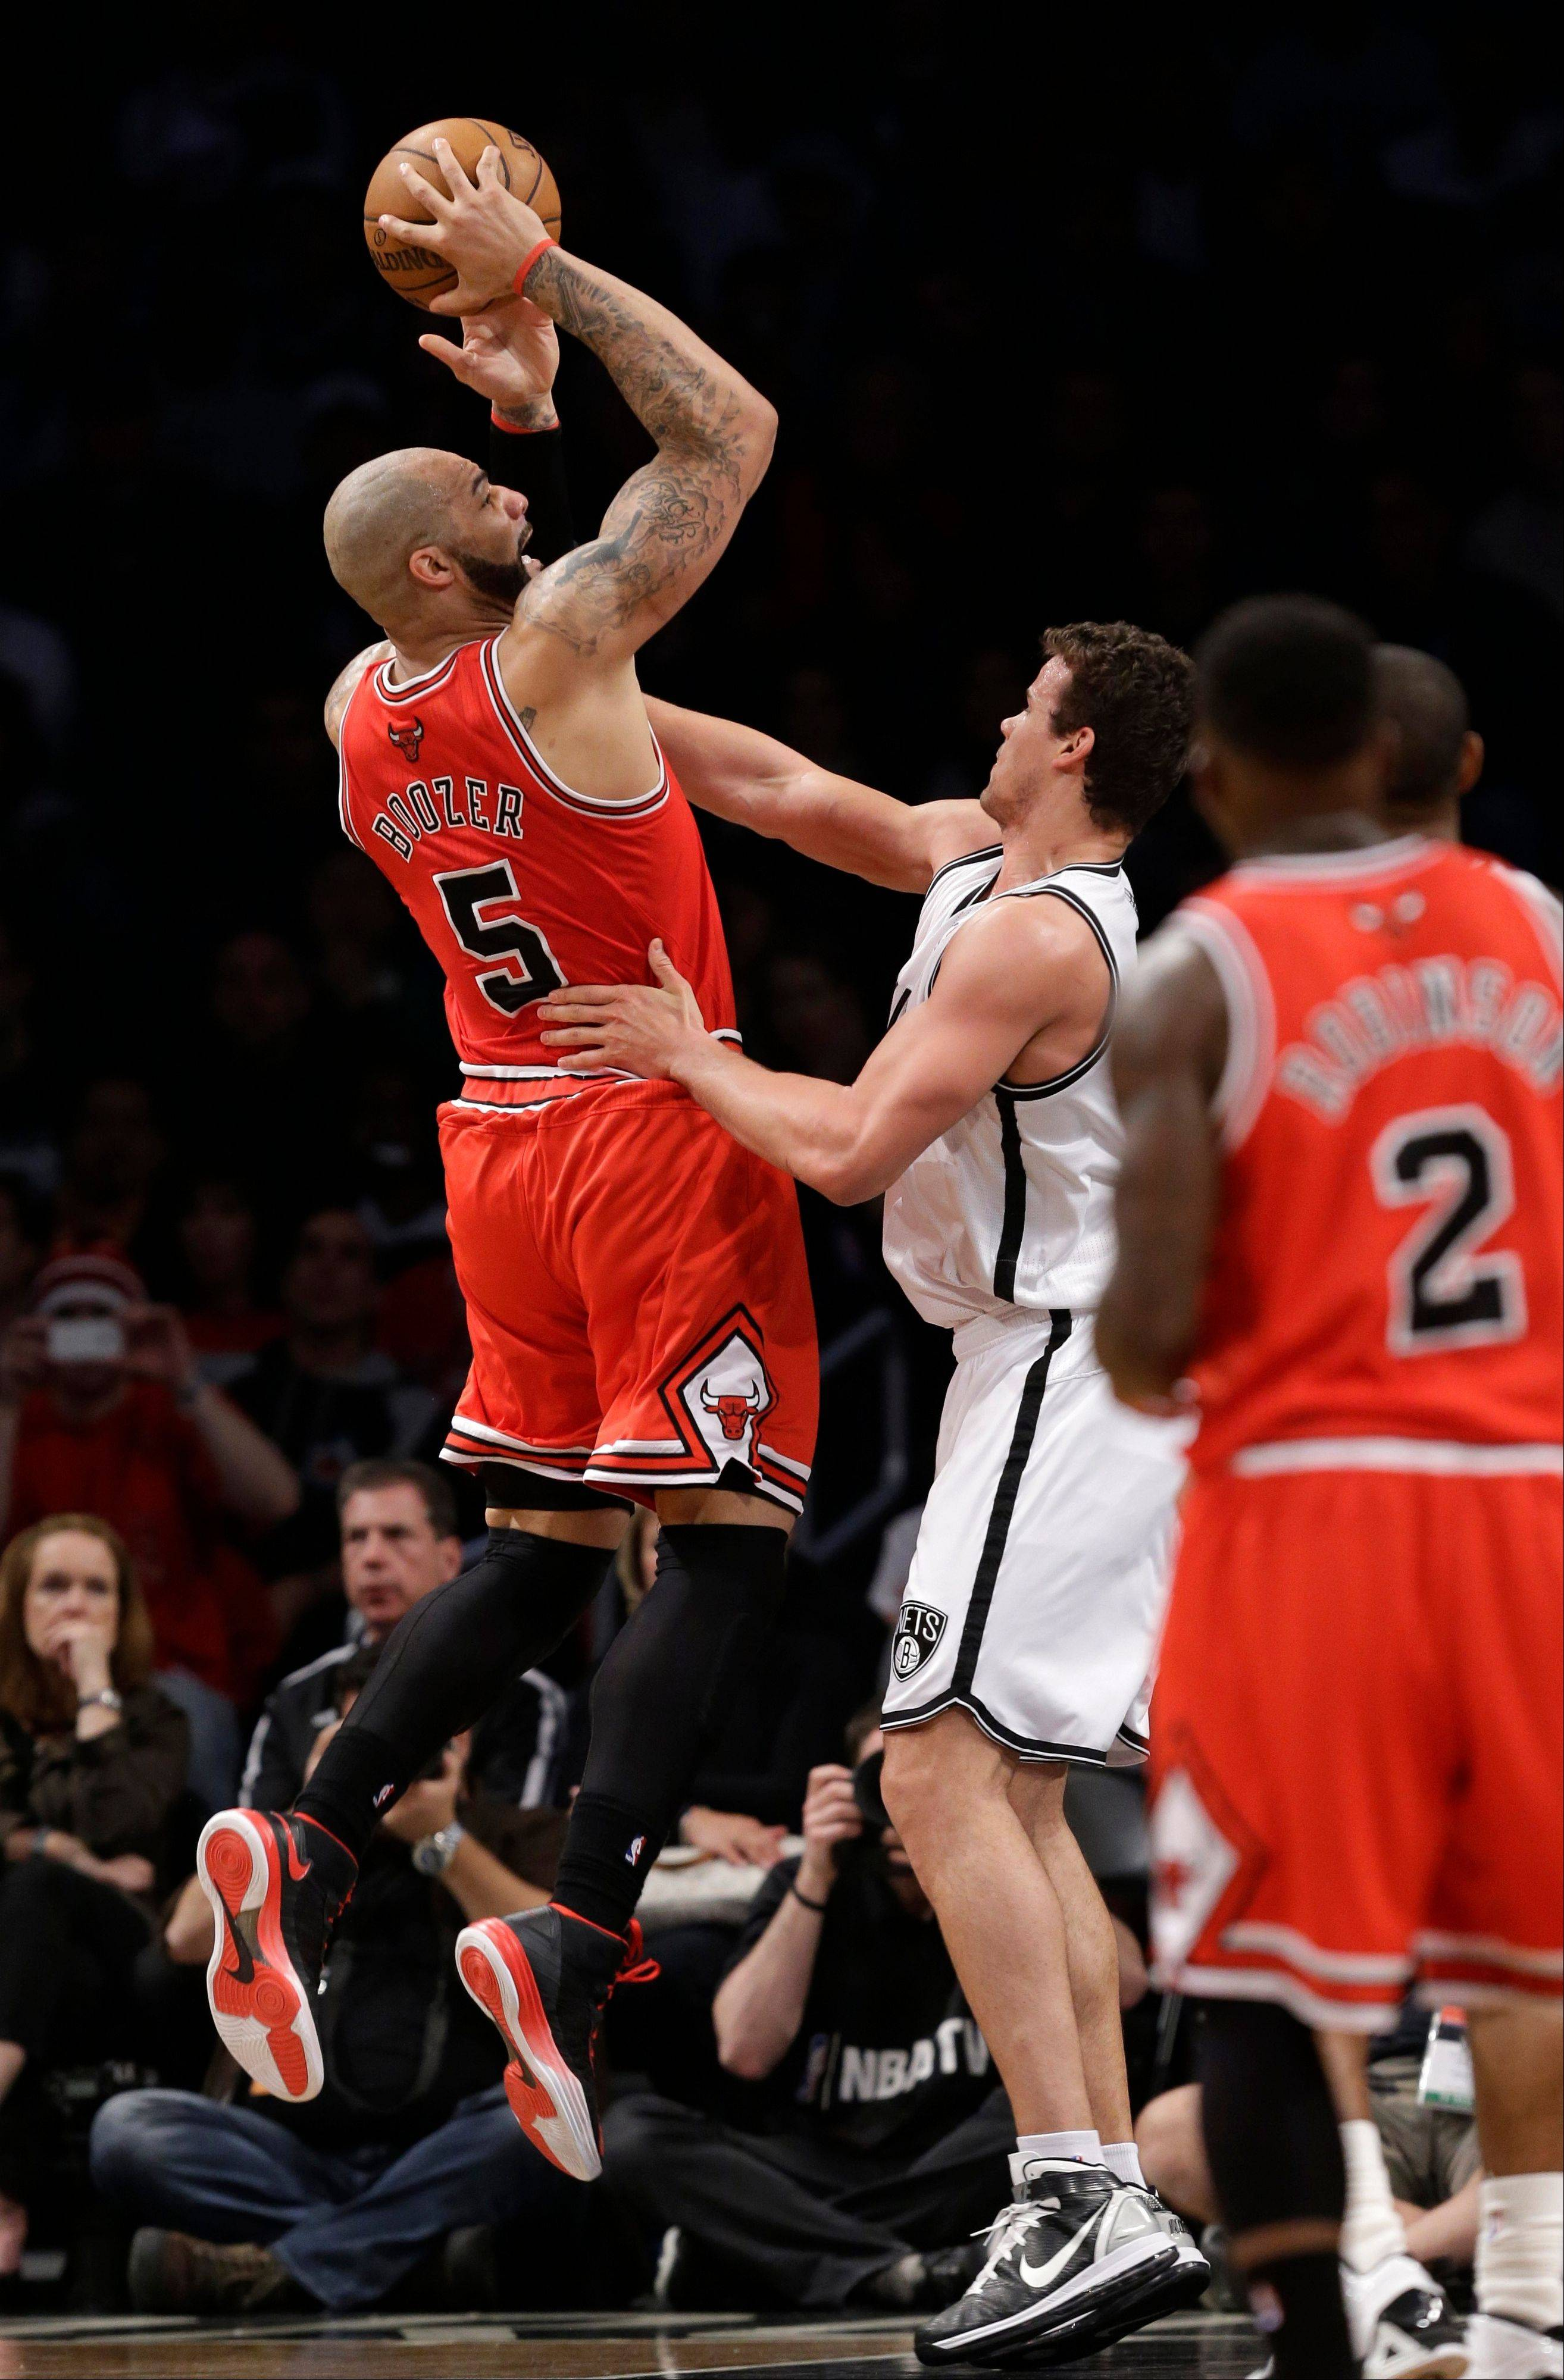 Chicago Bulls forward Carlos Boozer (5) shoots over Brooklyn Nets forward Kris Humphries (43) in the first half of Game 5 of their first-round NBA basketball playoff series, Monday, April 29, 2013, in New York.